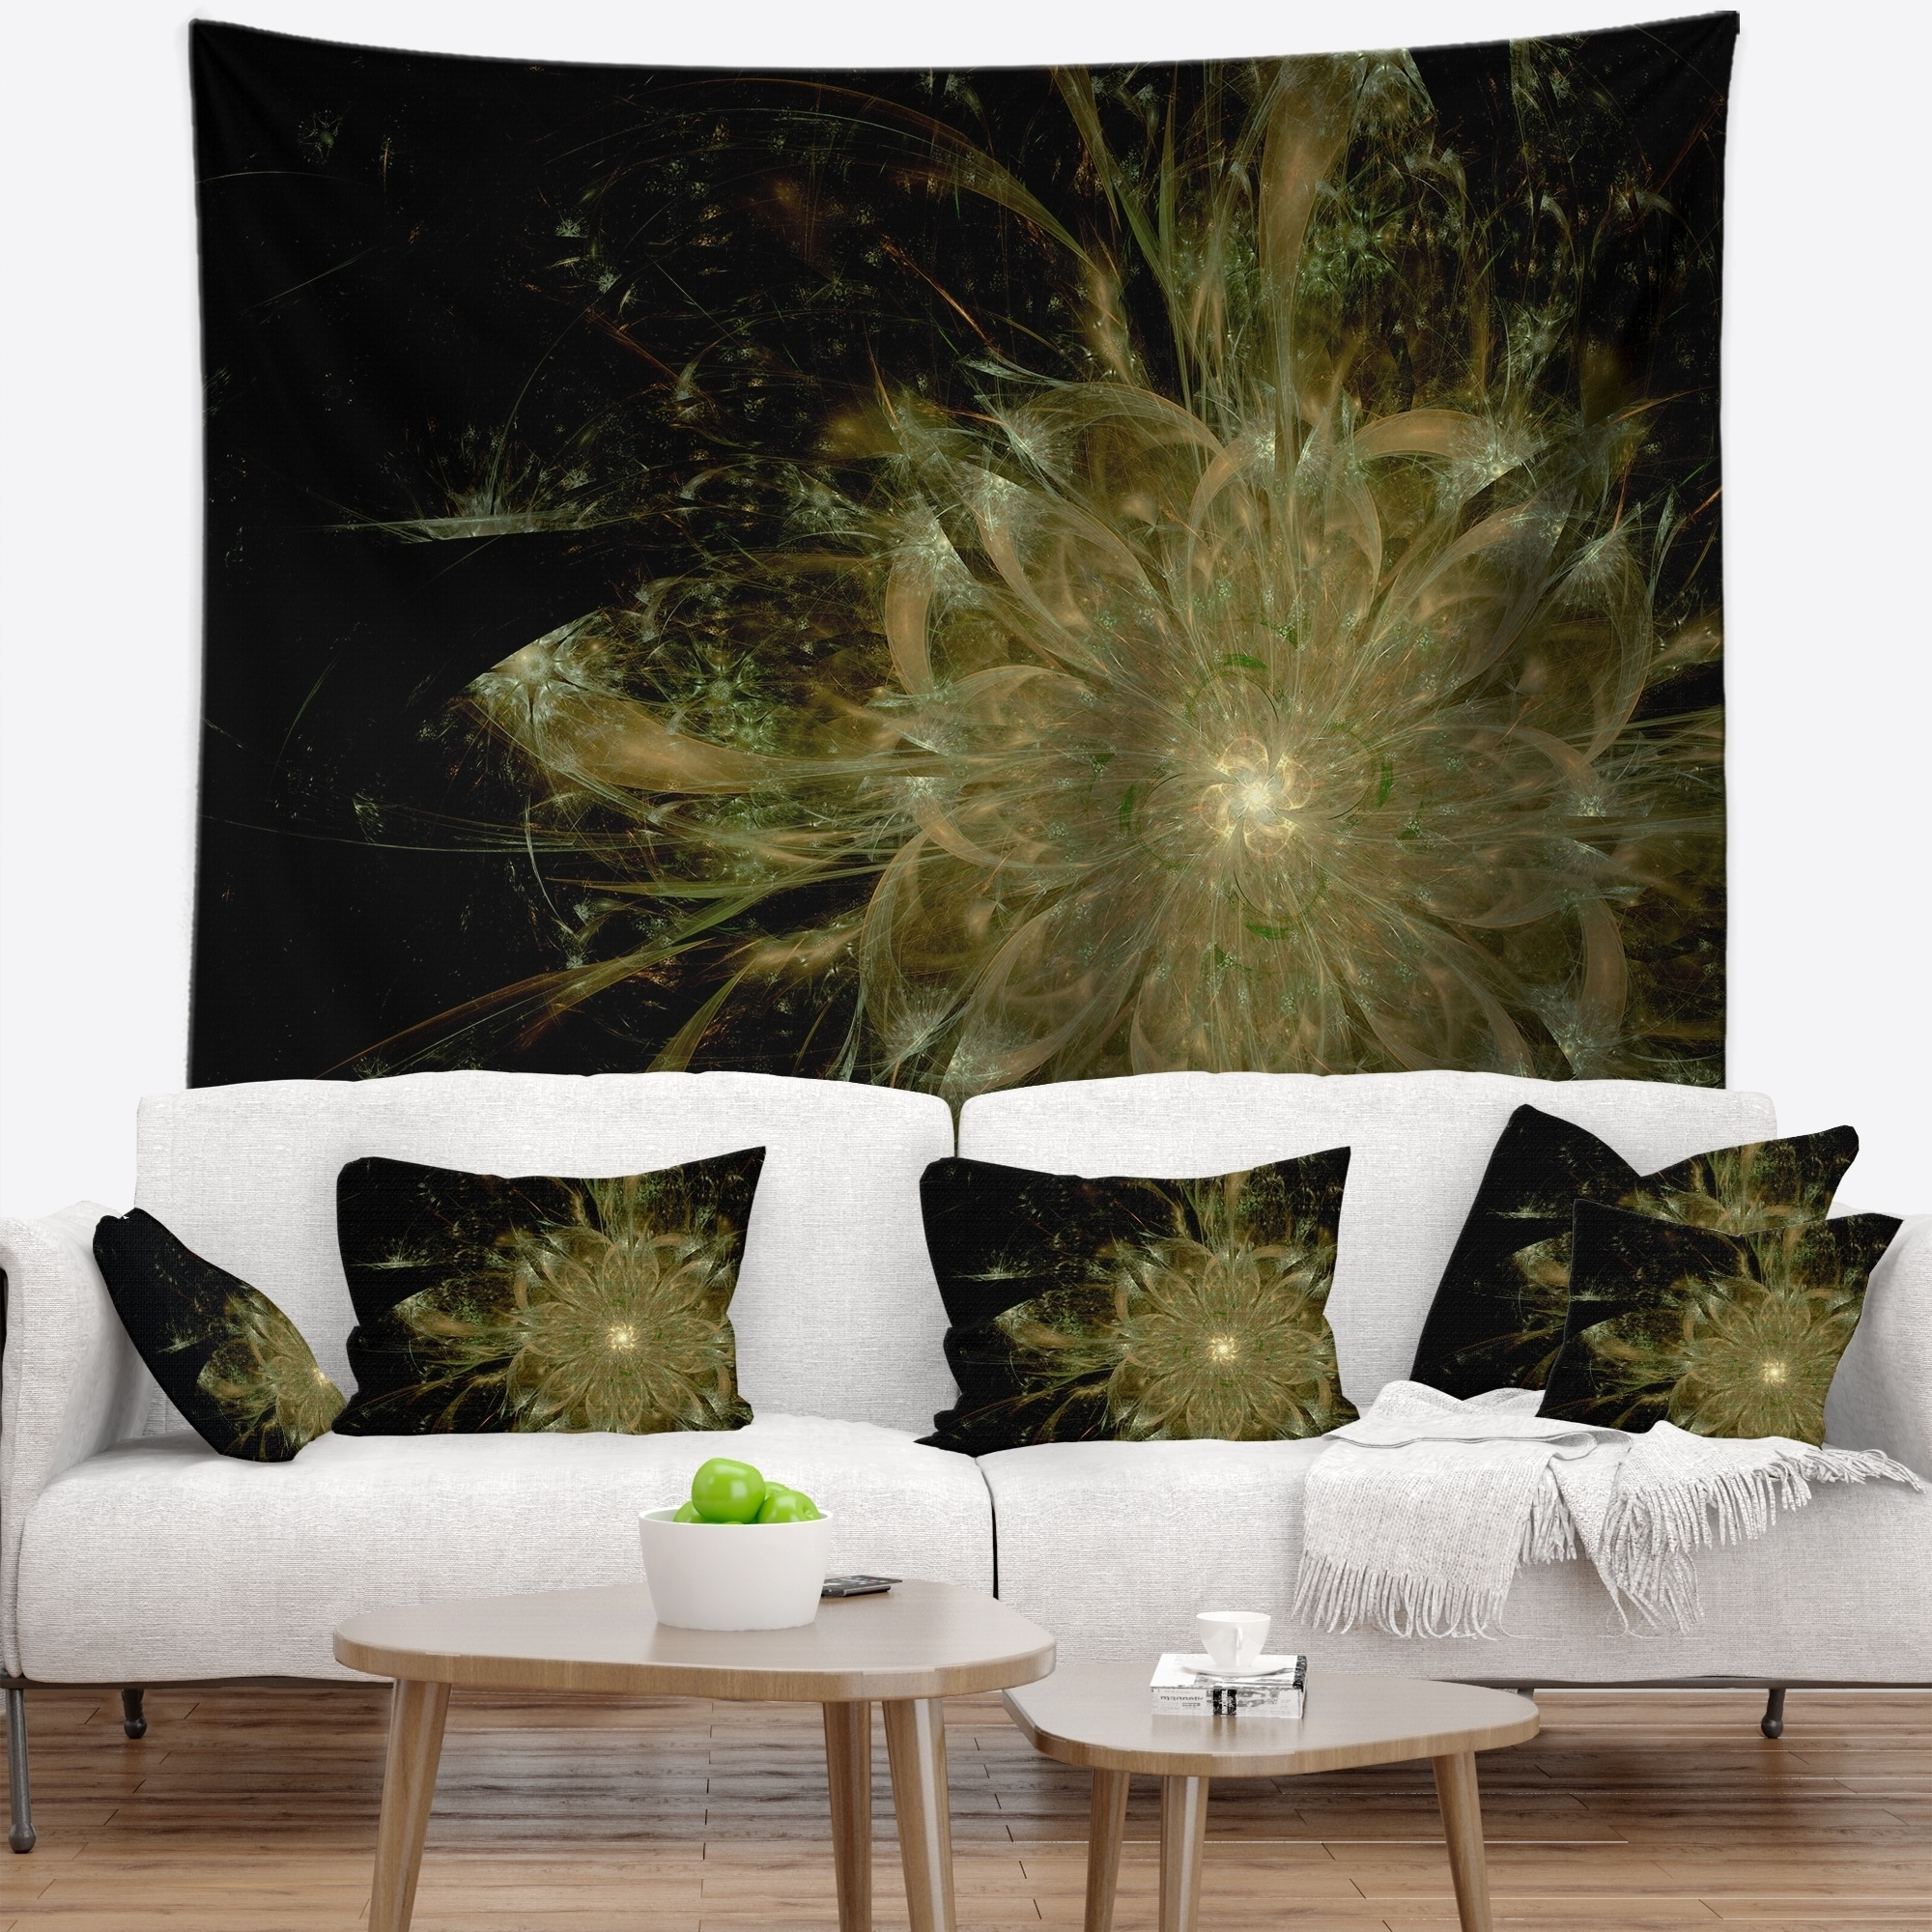 Home Kitchen Tapestries Designart Tap12021 60 50 Light Brown Symmetrical Fractal Flower Floral Blanket Décor Art For Home And Office Wall Tapestry X 50 In 60 In Large